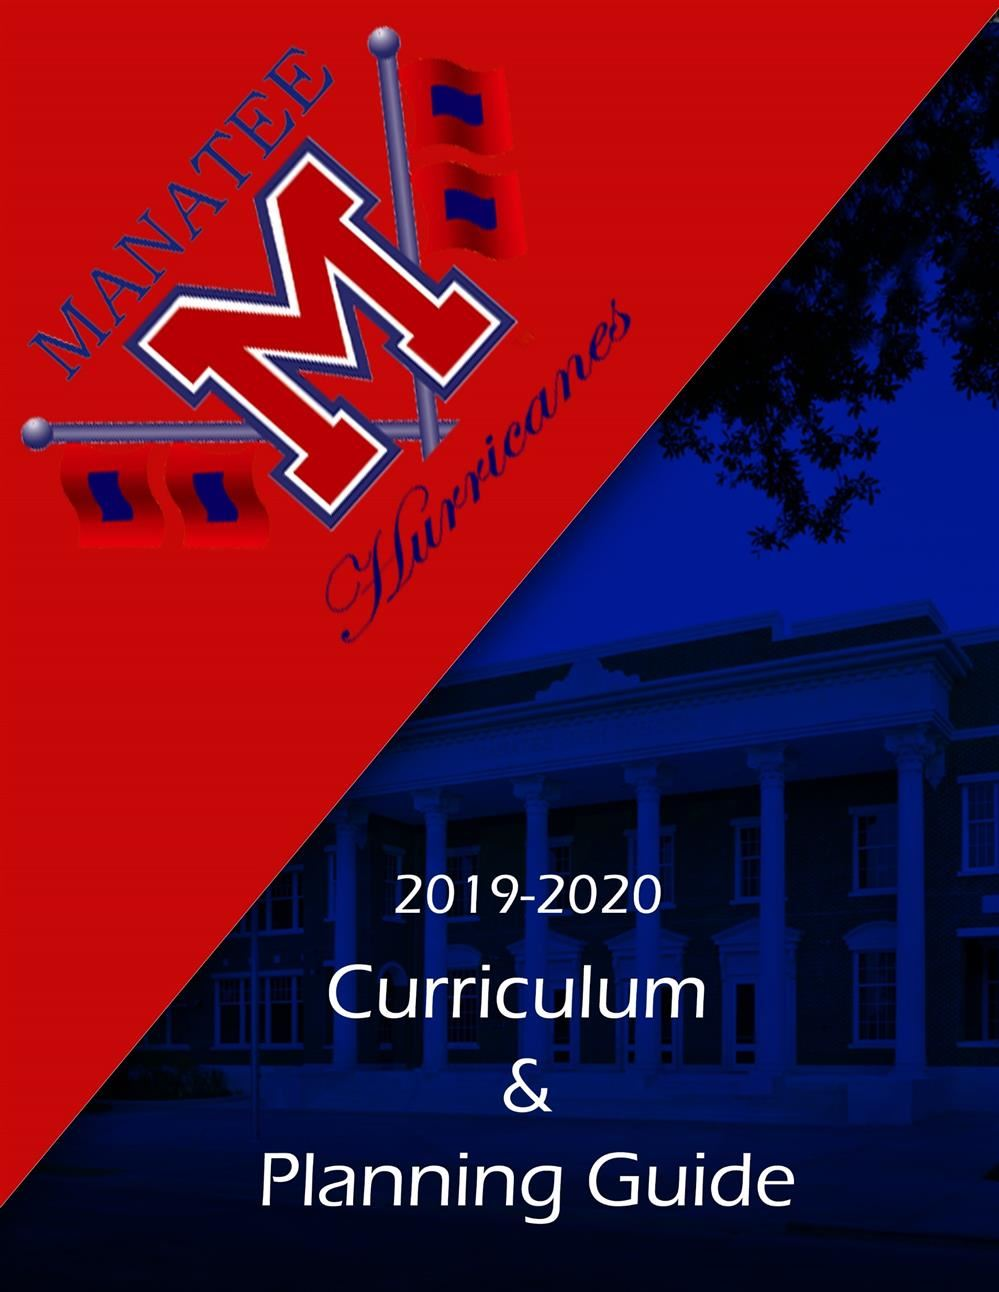 2019-2020 Course Registration Information - Read more about the process...